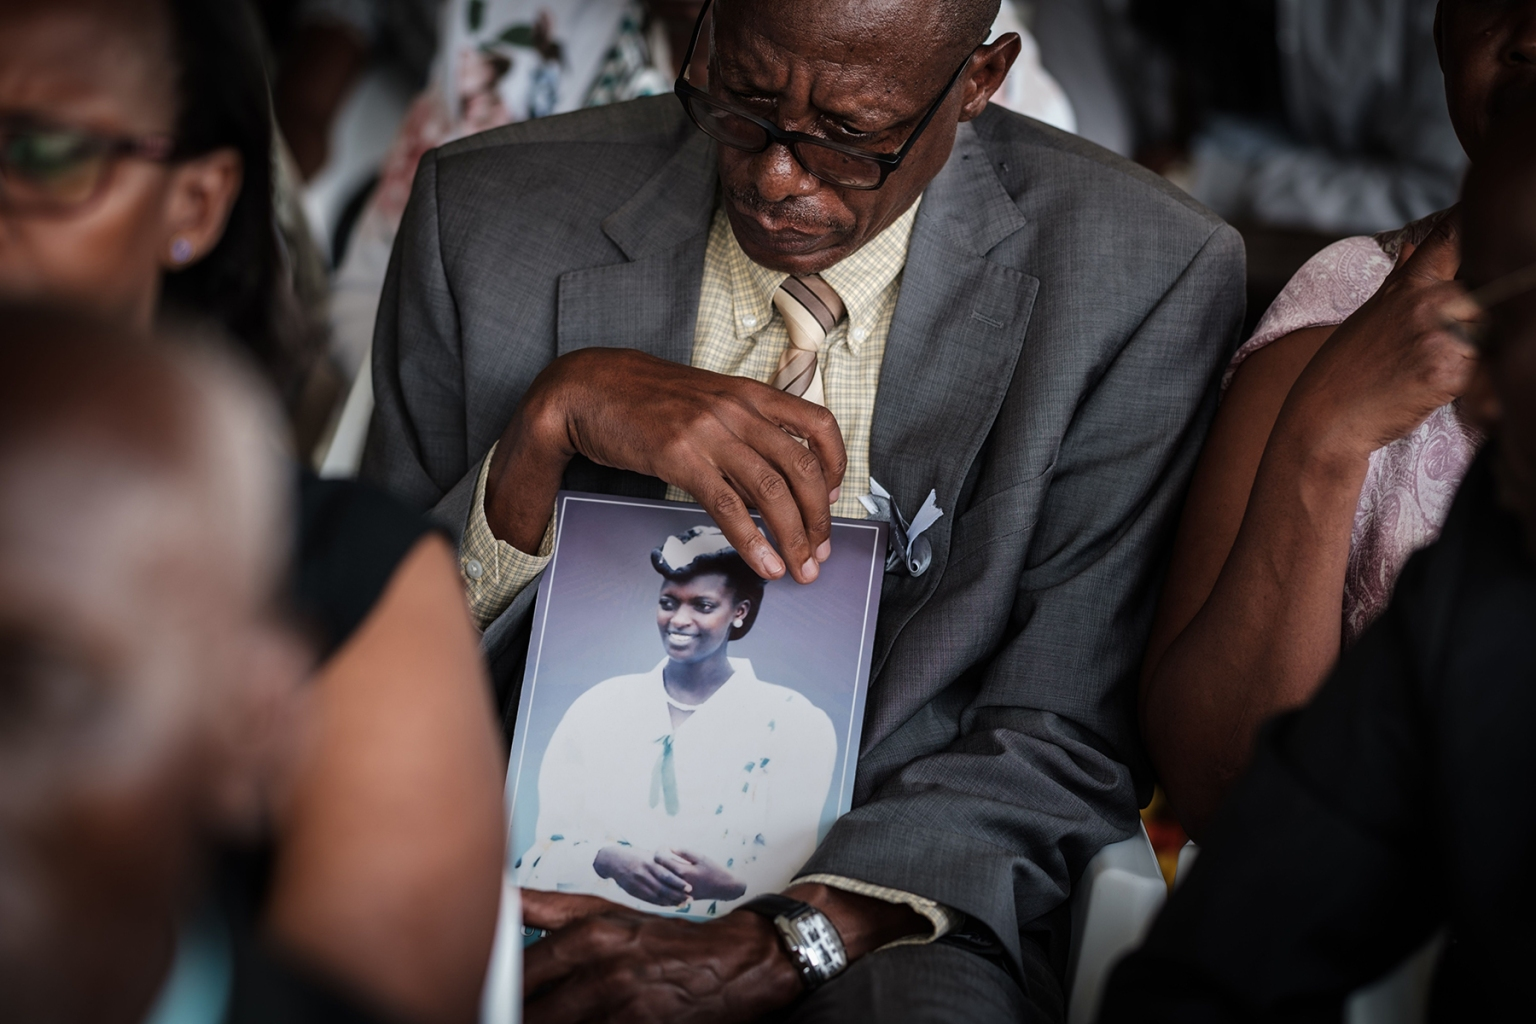 Vianney Rusanganwa, 61, holds a portrait of his late wife Liberatha Mukangira who died at age 31 in 1994, during the mass funeral to bury 81 coffins containing newly discovered remains of victims of the Rwandan genocide at the Nyanza Genocide Memorial near Kigali on May 4. YASUYOSHI CHIBA/AFP/Getty Images